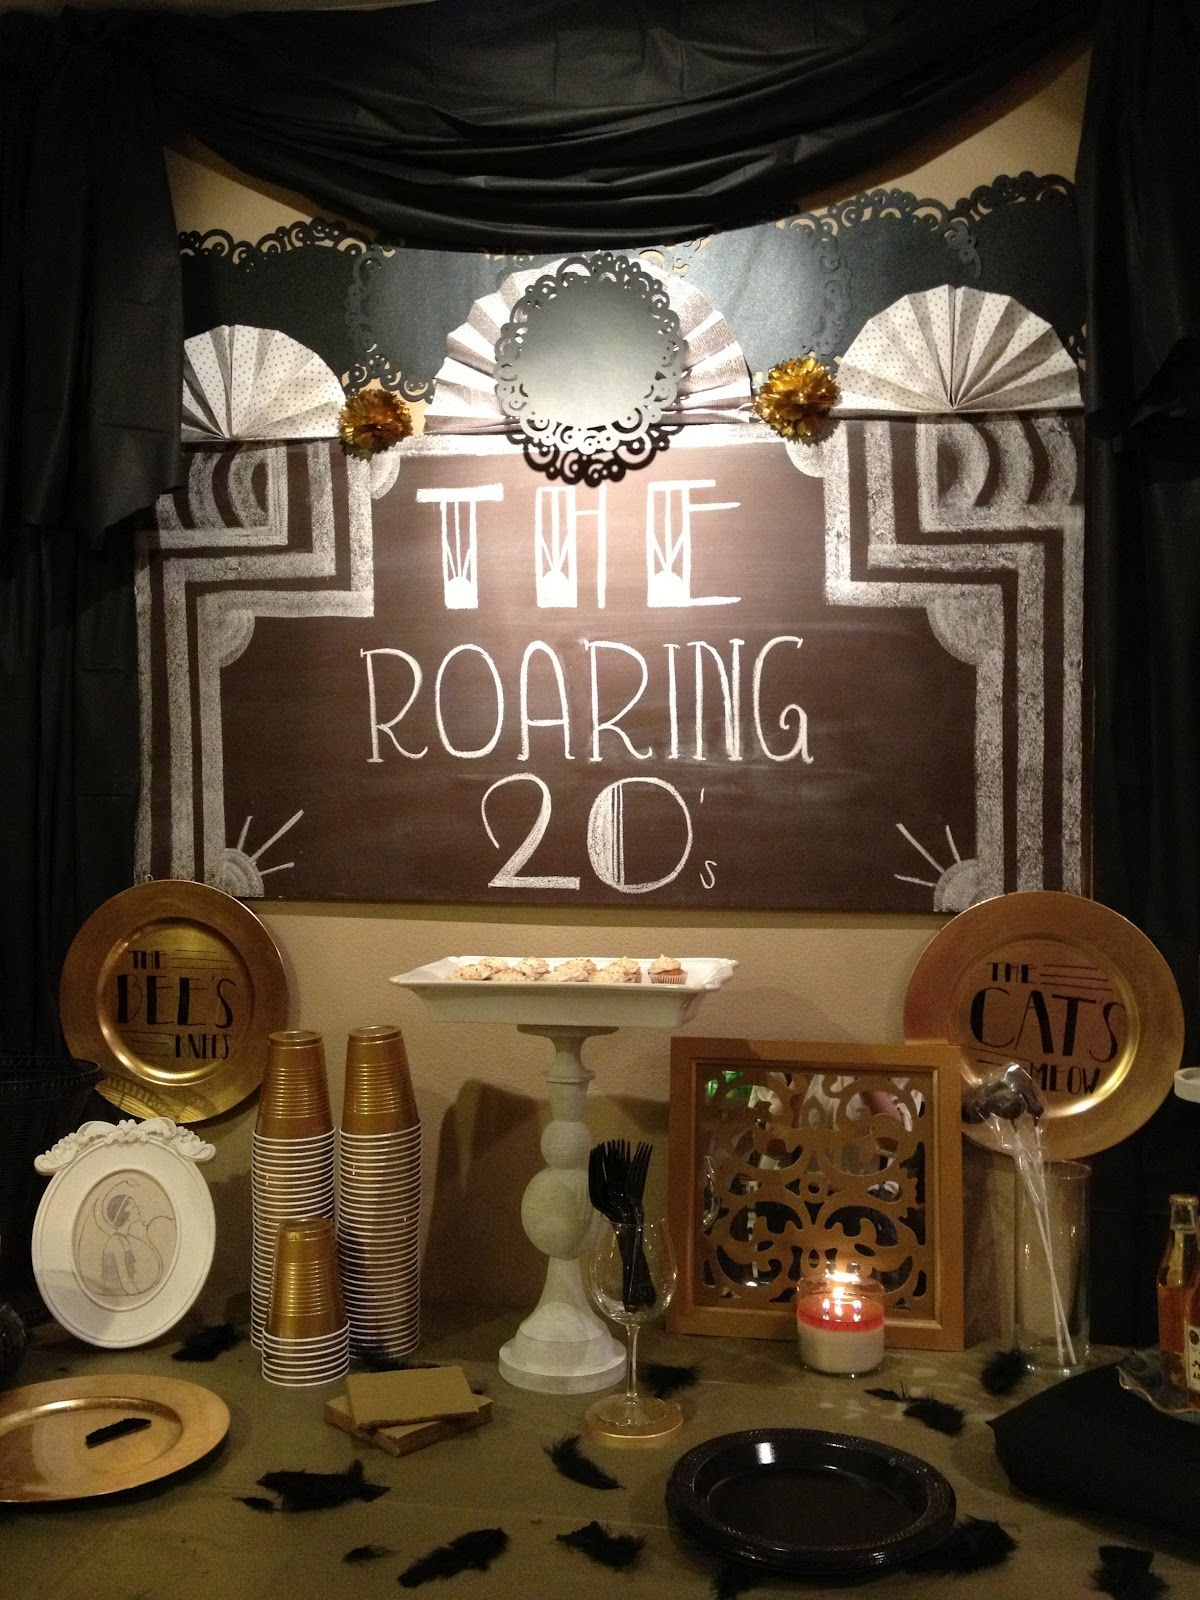 roaring 20's party ideas from the .99 cent store!!!--but with